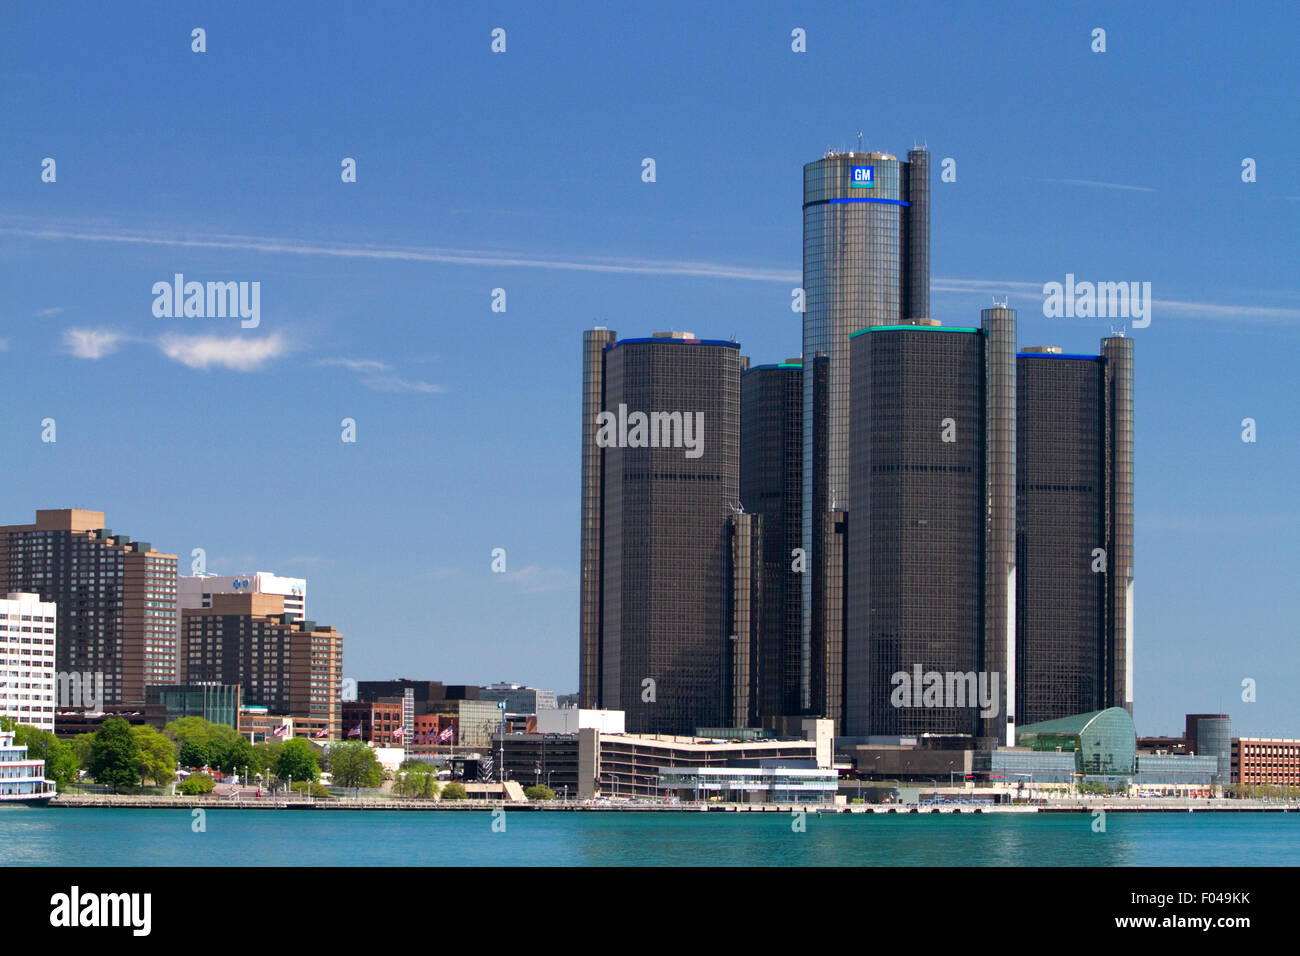 Le GM Renaissance Center sur l'International Riverfront Detroit, Michigan, USA. Photo Stock